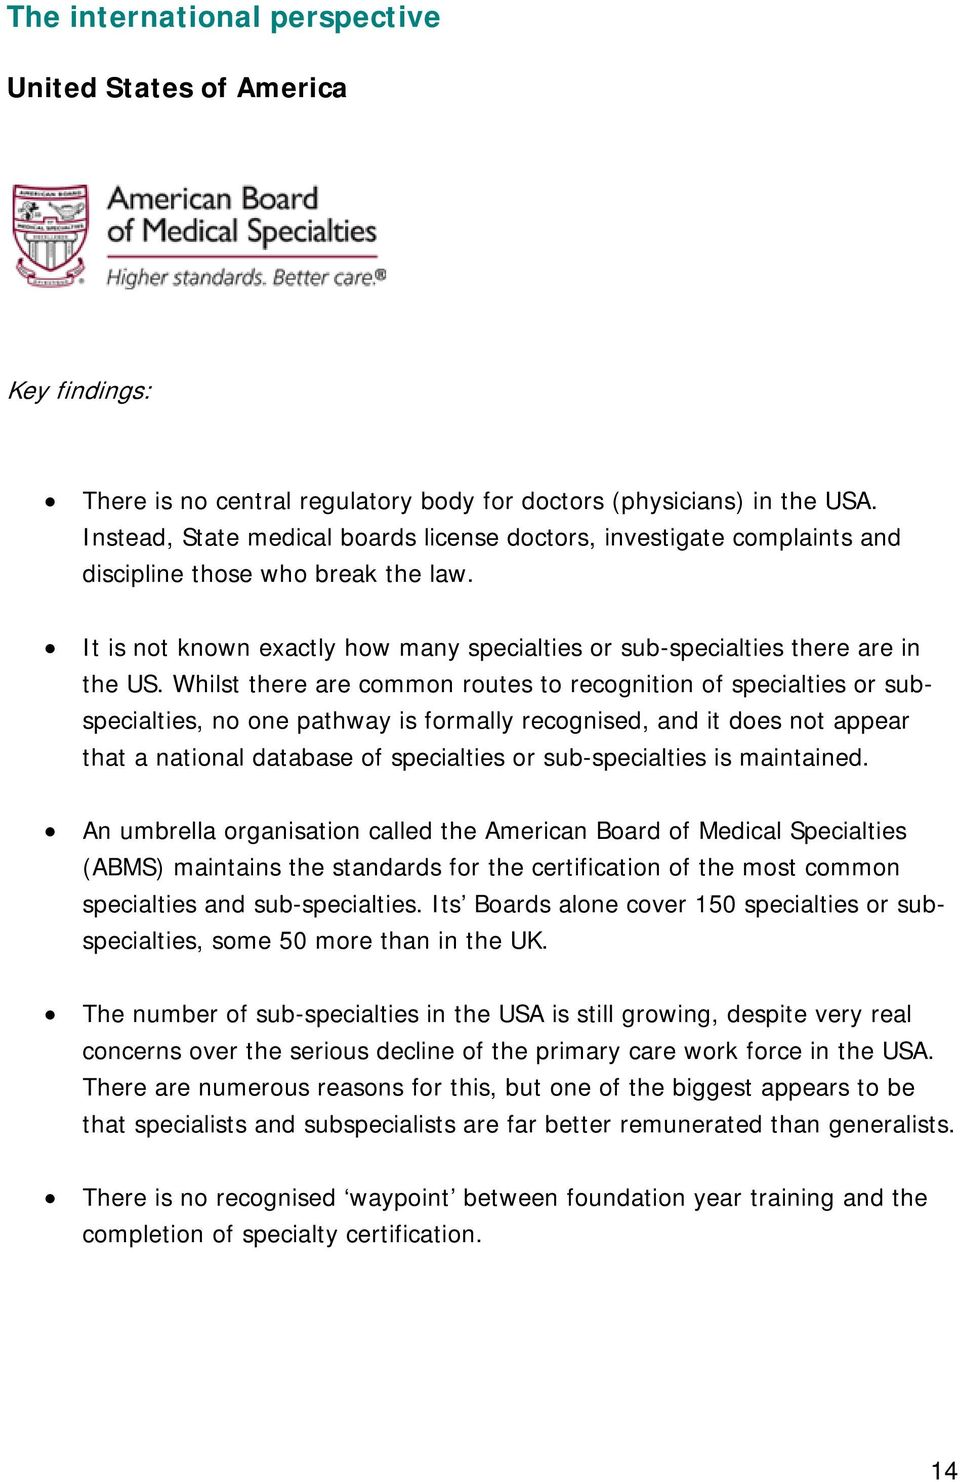 Whilst there are common routes to recognition of specialties or subspecialties, no one pathway is formally recognised, and it does not appear that a national database of specialties or